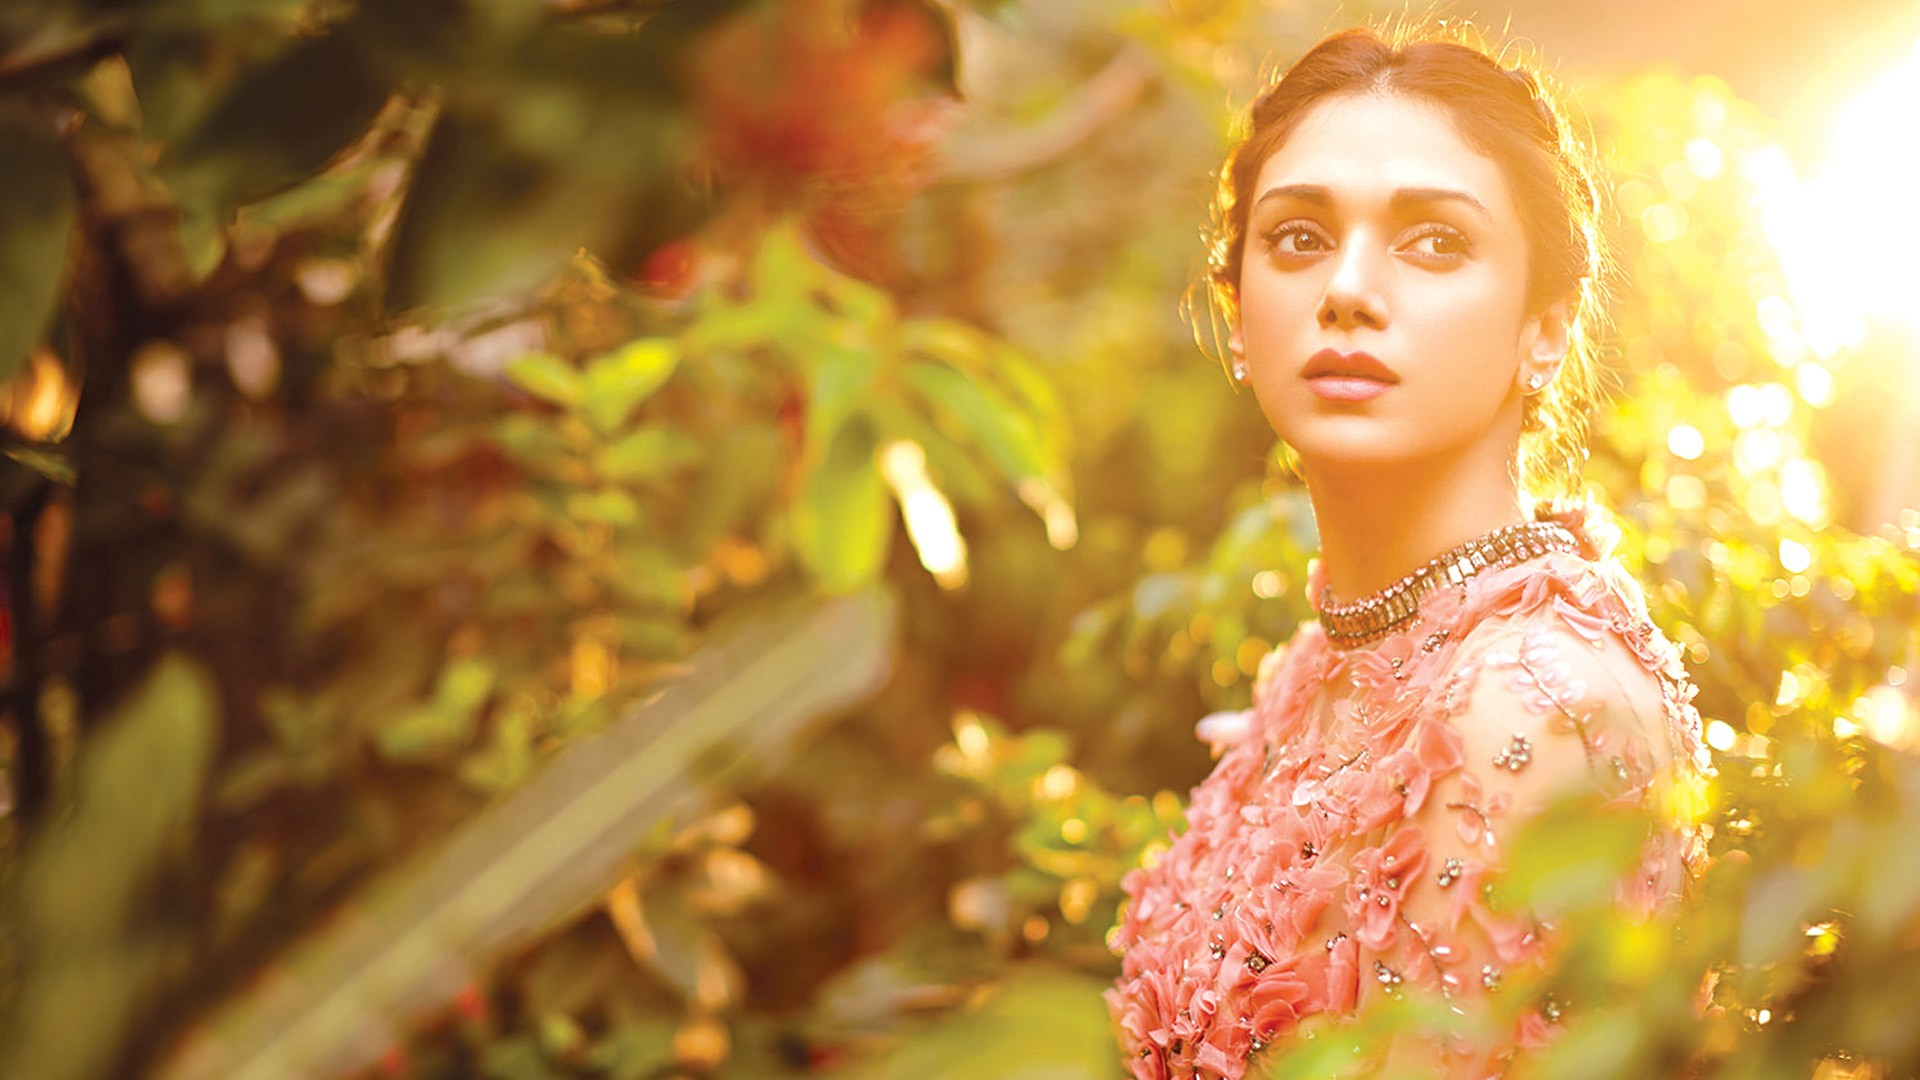 Cute Indian Actress Wallpapers Actress Aditi Rao Hydari Wallpapers Hd Wallpapers Id